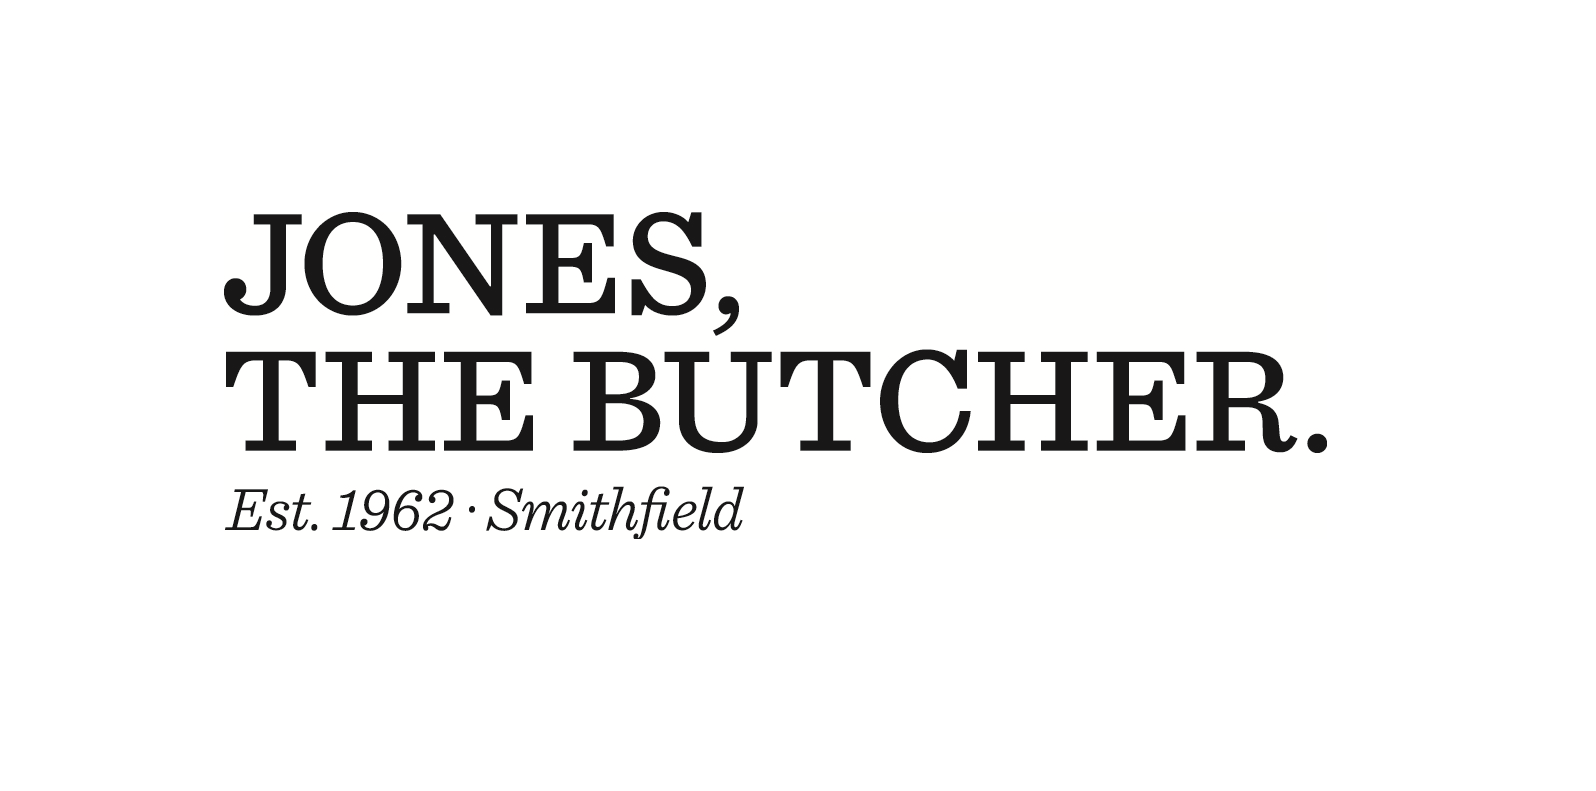 Jones, the Butcher